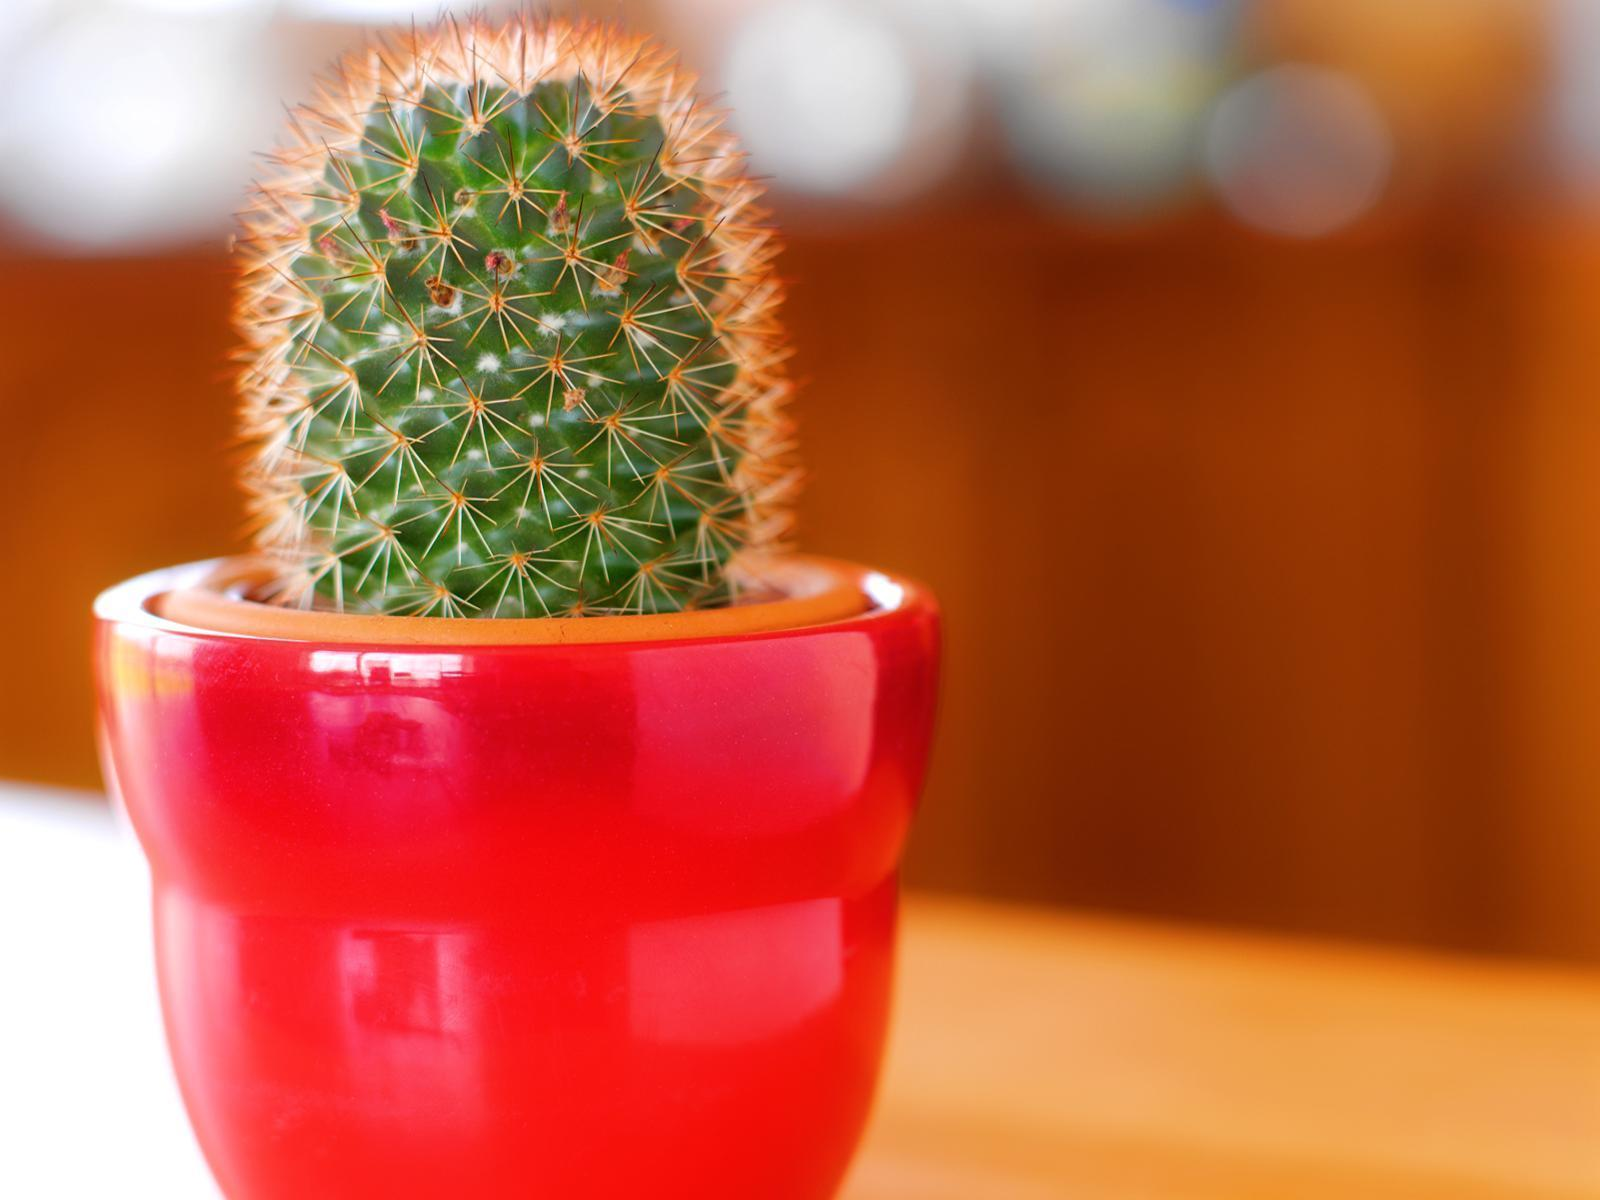 hd cactus wallpapers - photo #37